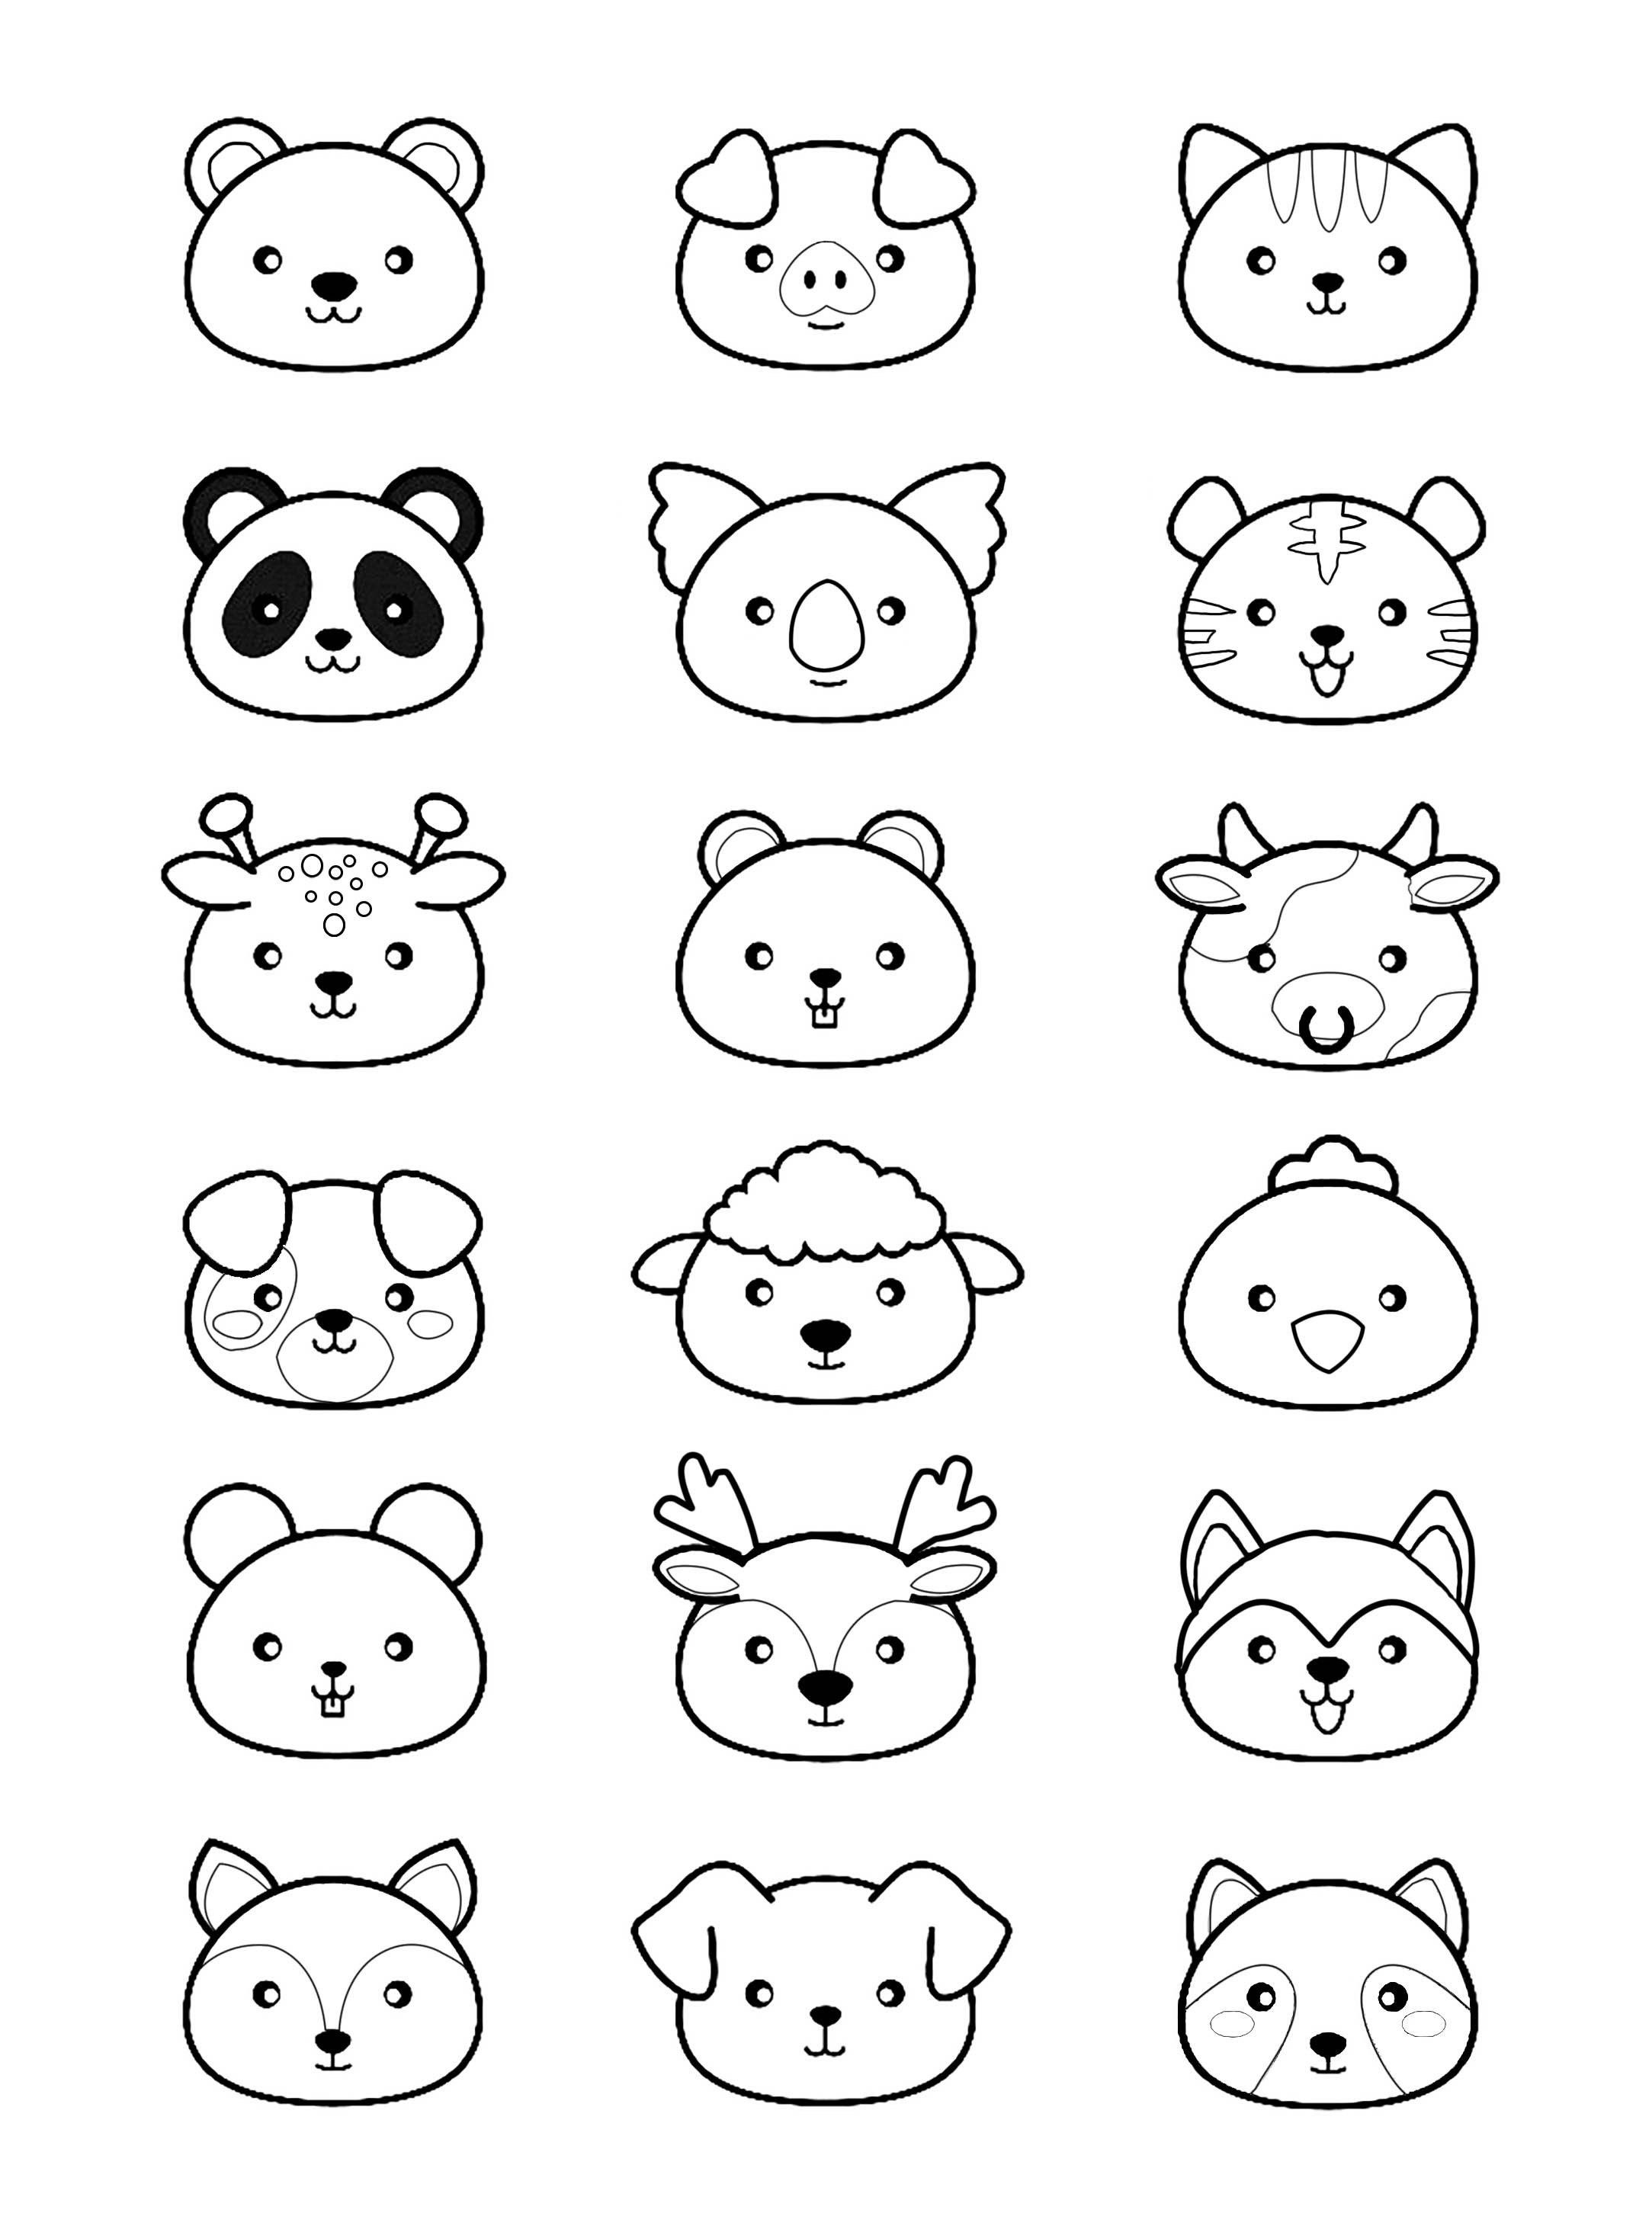 Image Result For Cute Kawaii Animals Black And White Panda